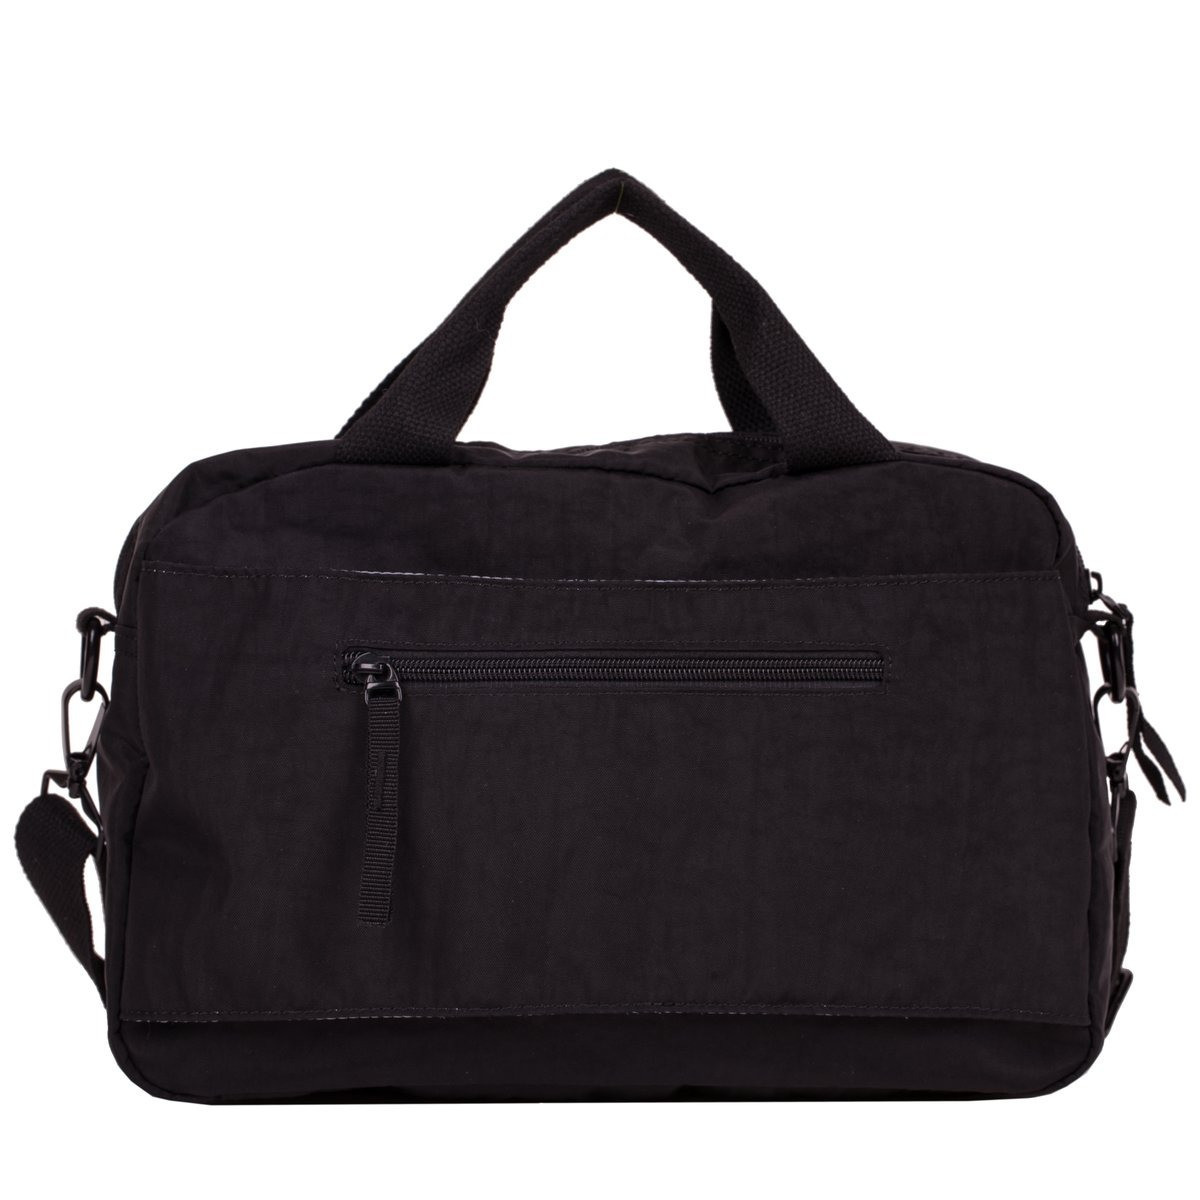 Twin Strap Over Luggage Travel Bag